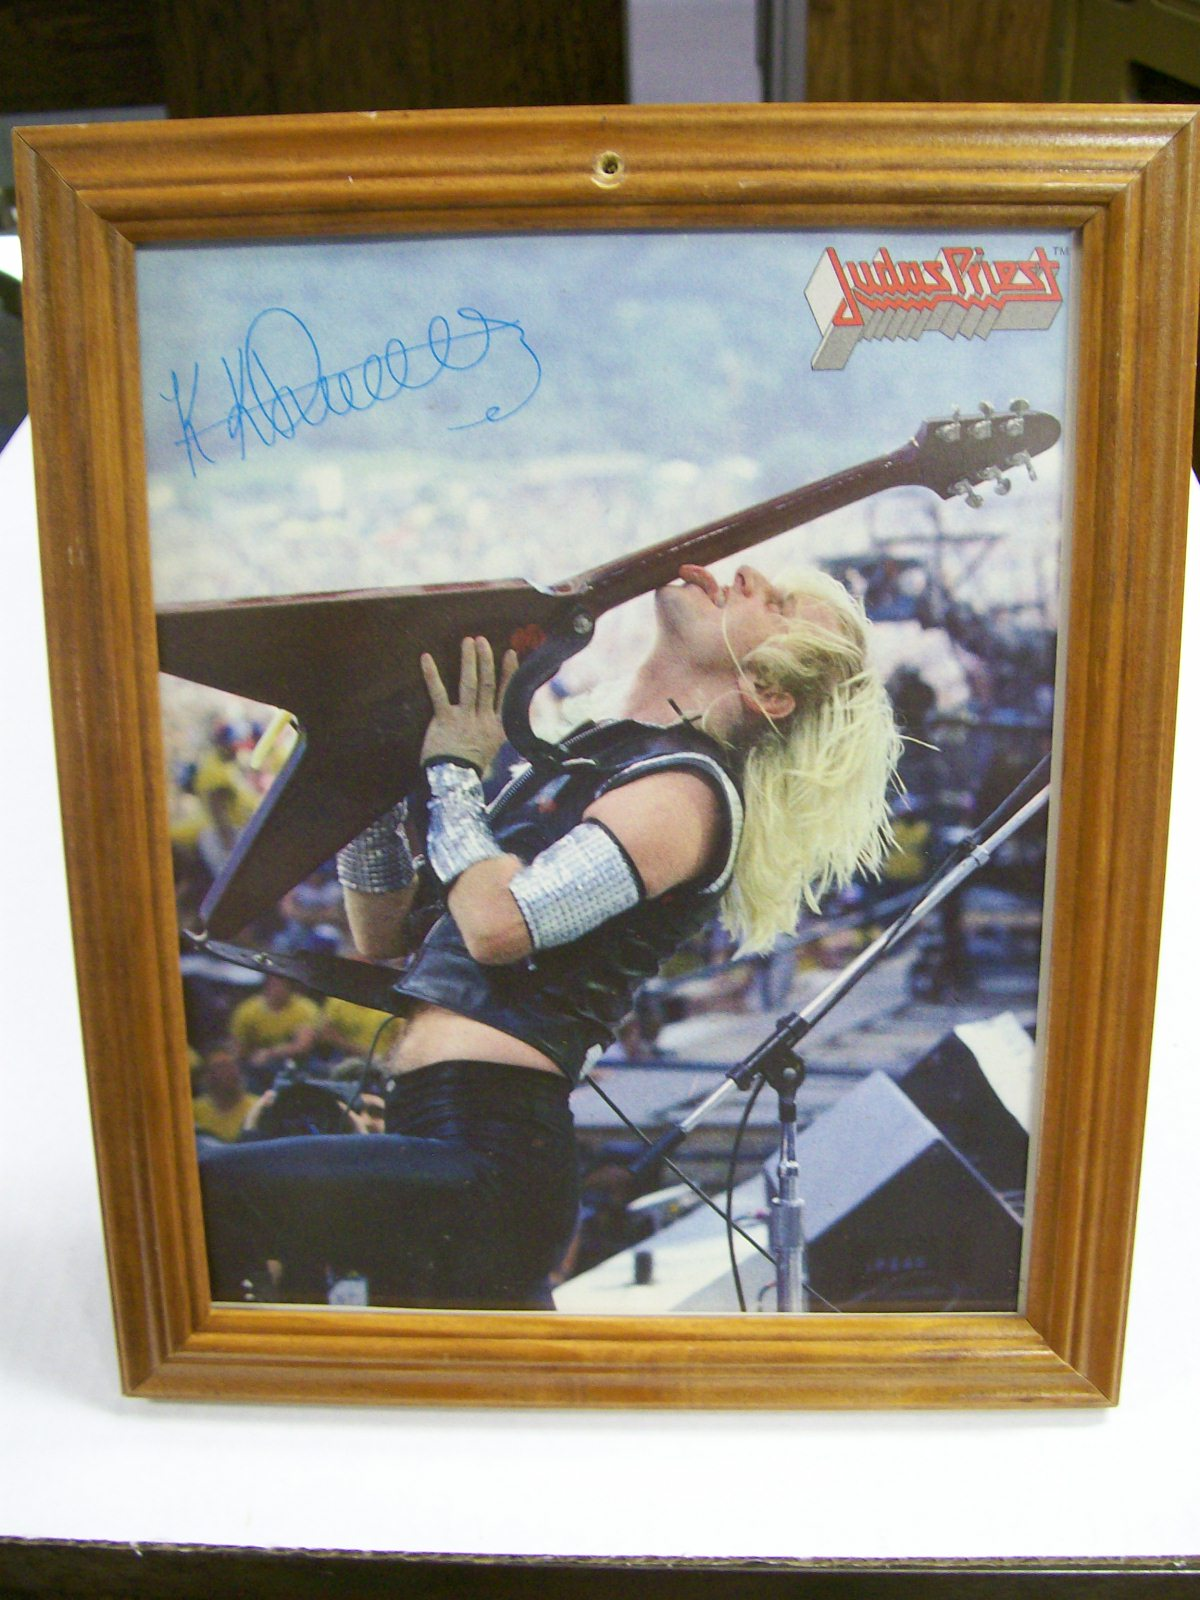 K.K. Downing Autograph Color Photo/Judas Priest Band